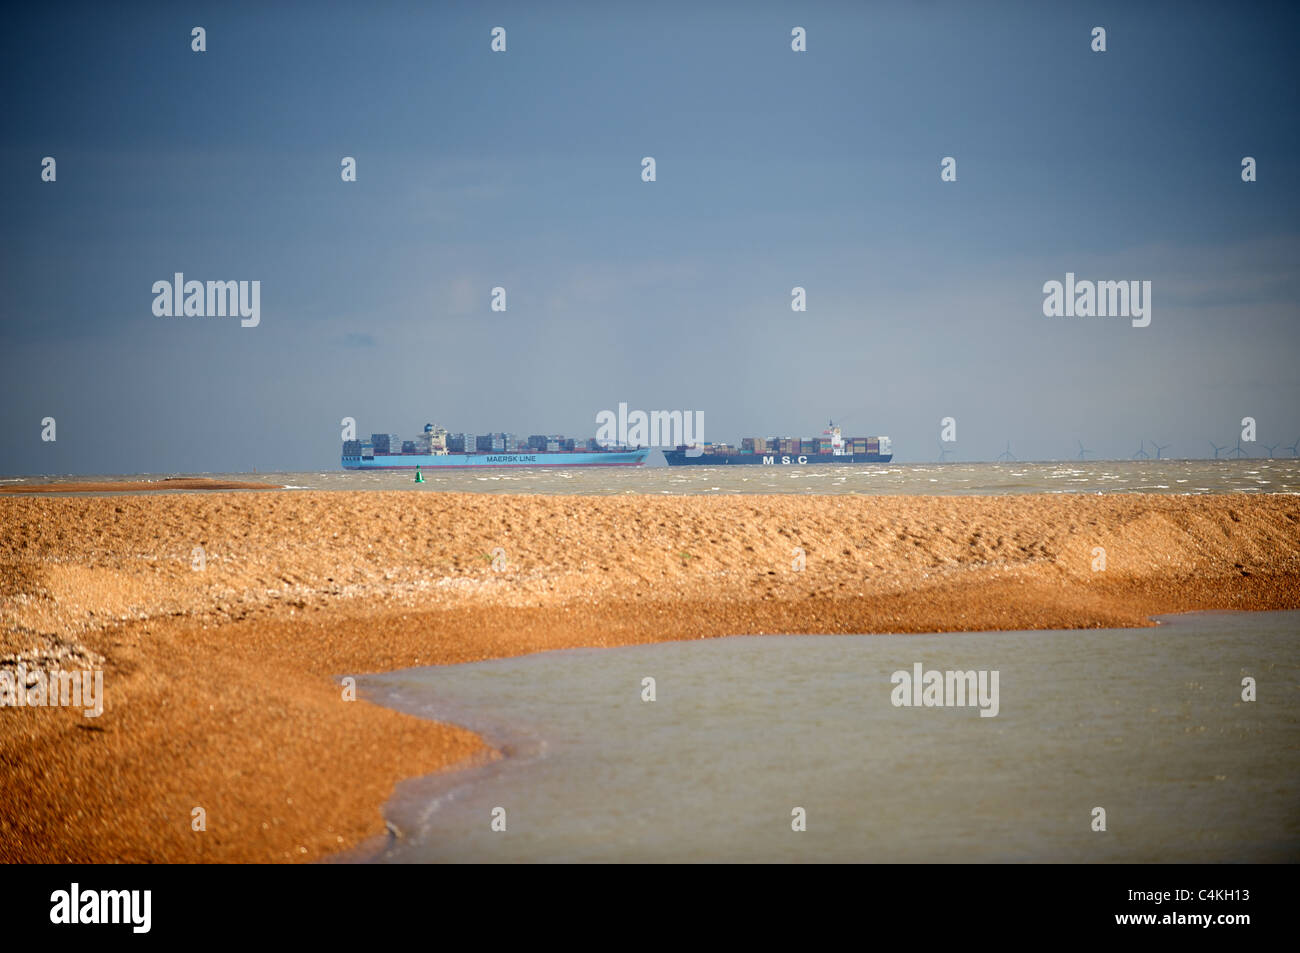 Containers ships passing in the North Sea close to the Port of Felixstowe, Suffolk, UK. - Stock Image